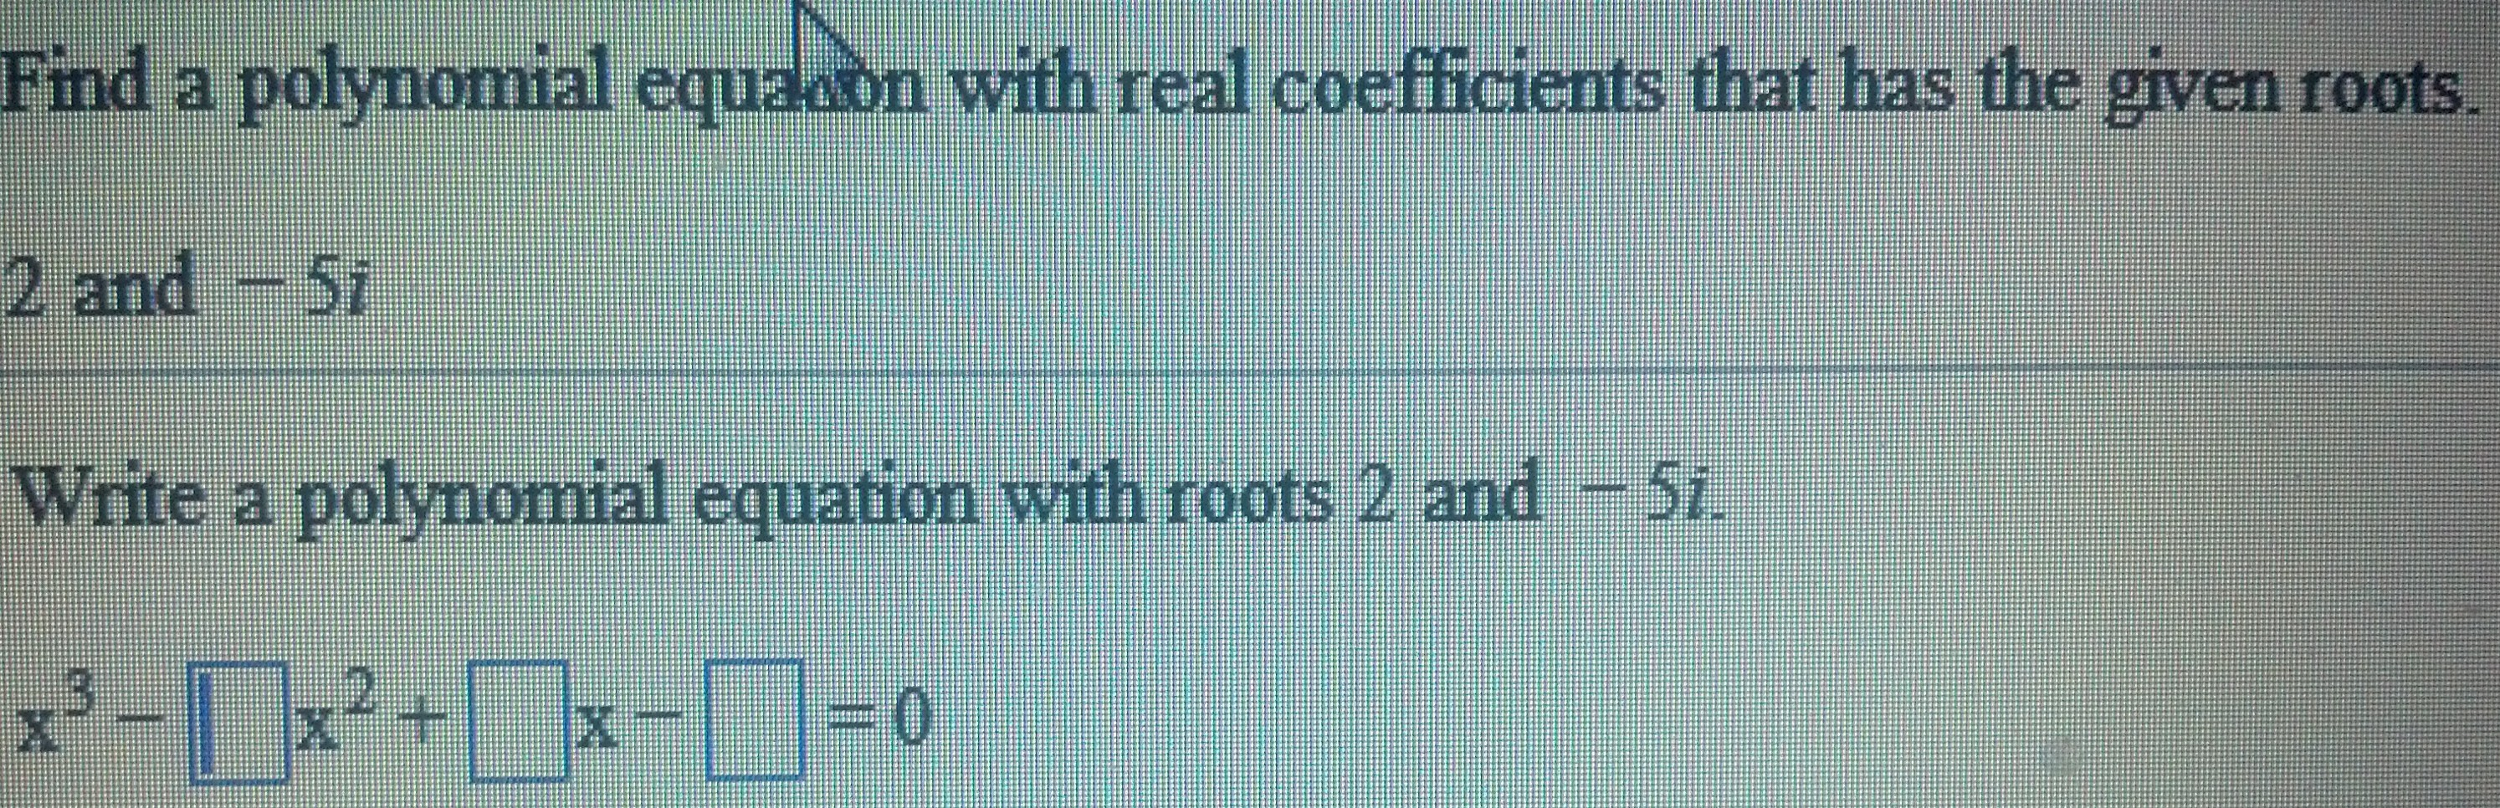 how to find roots of a polynomial in matlab